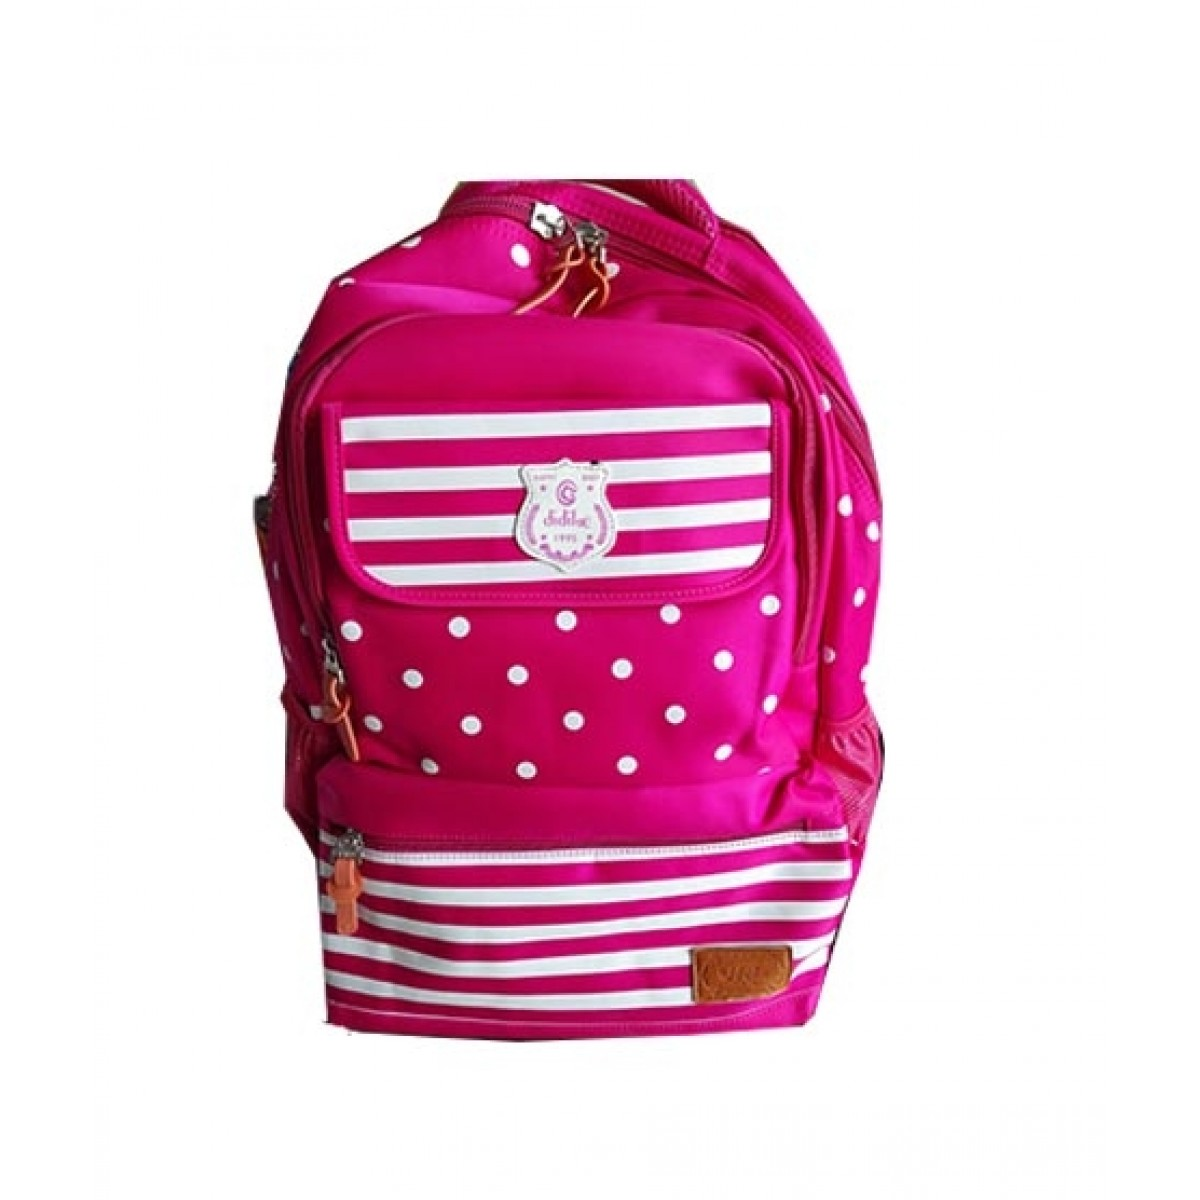 M Toys Polka Dot School Bag For Kids Pink (0916)